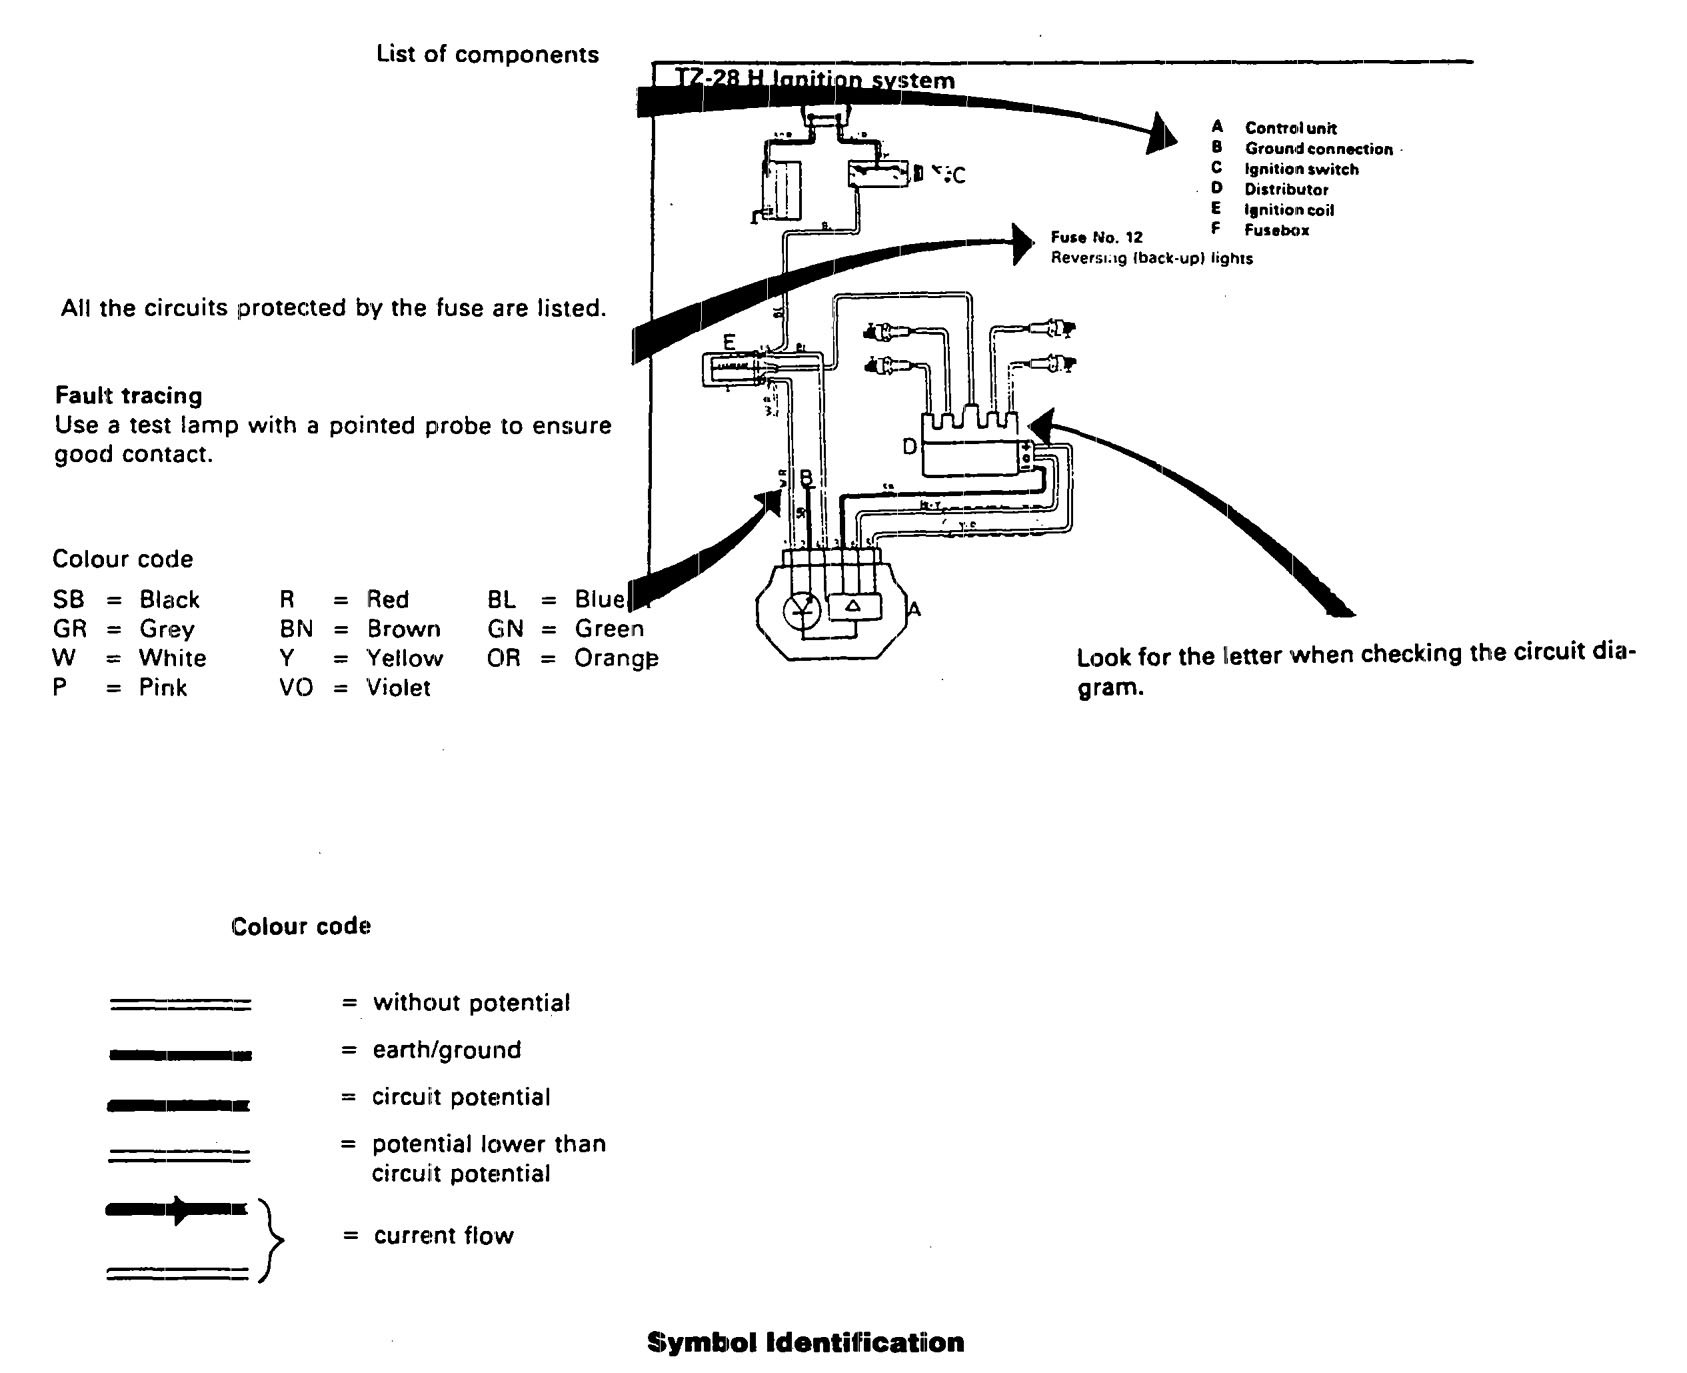 Volvo 760 (1990) - wiring diagrams - symbol ID - Carknowledge.info | Volvo 760 Wiring Diagram |  | Carknowledge.info